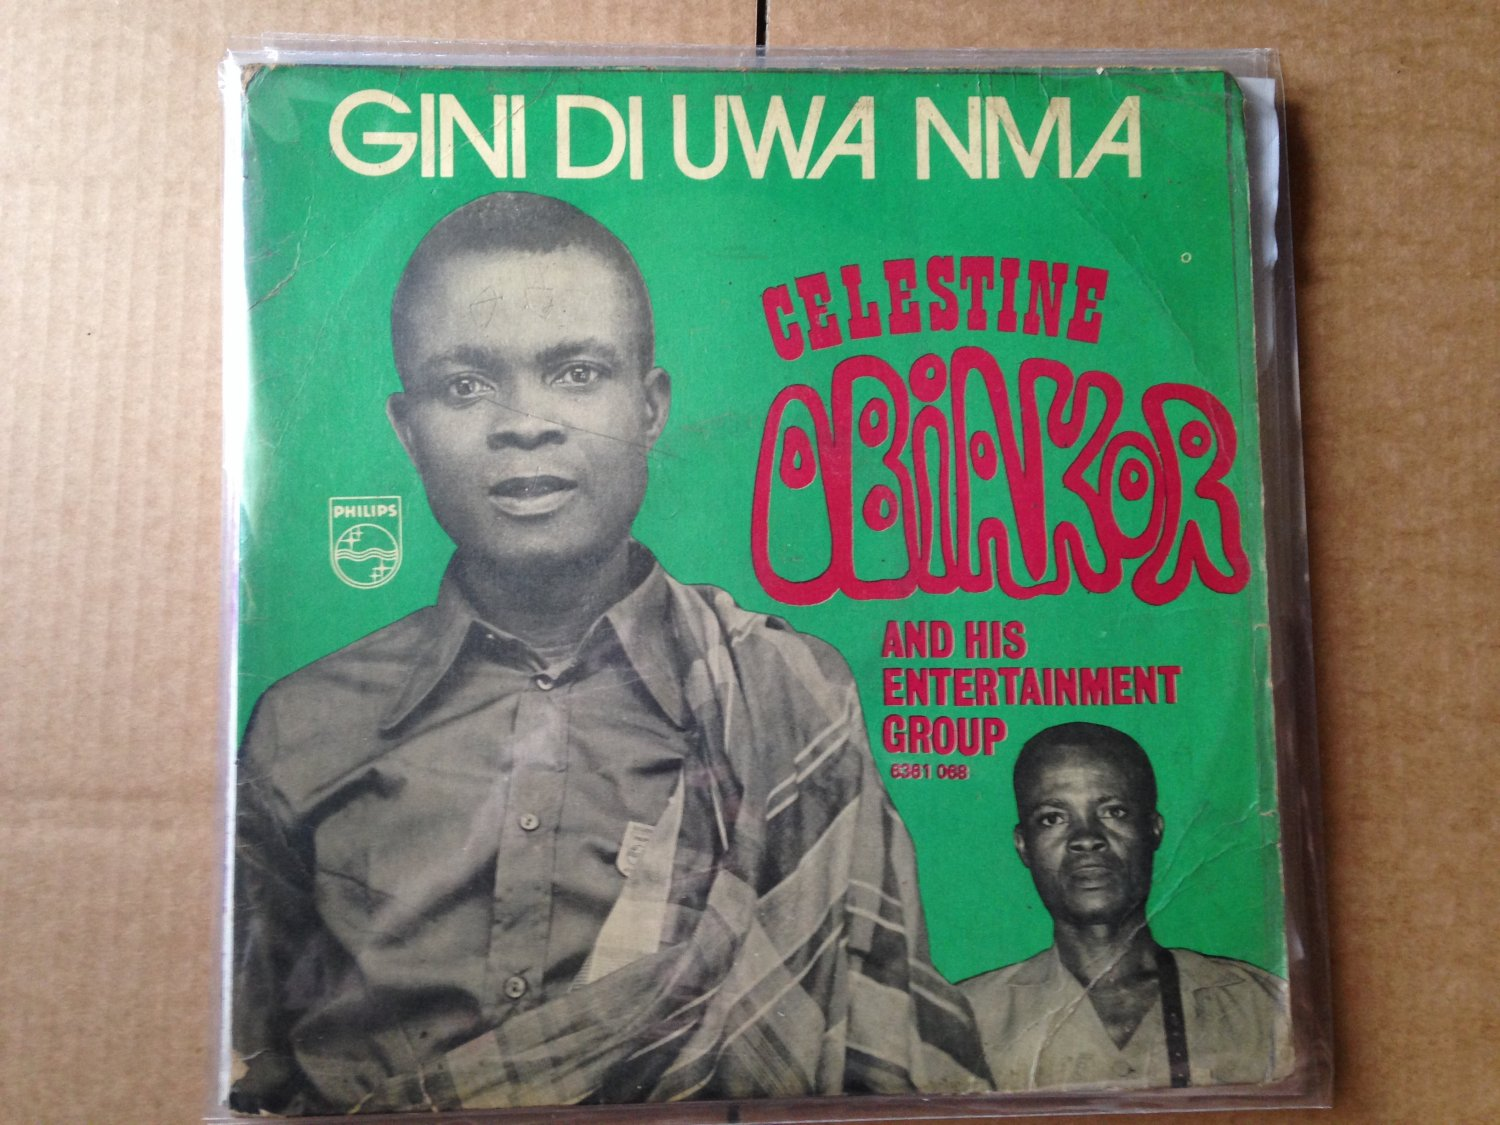 CELESTINE OBIAKOR & HIS ENTERTAINMENT LP gini di uwa nma NIGERIA mp3 LISTEN